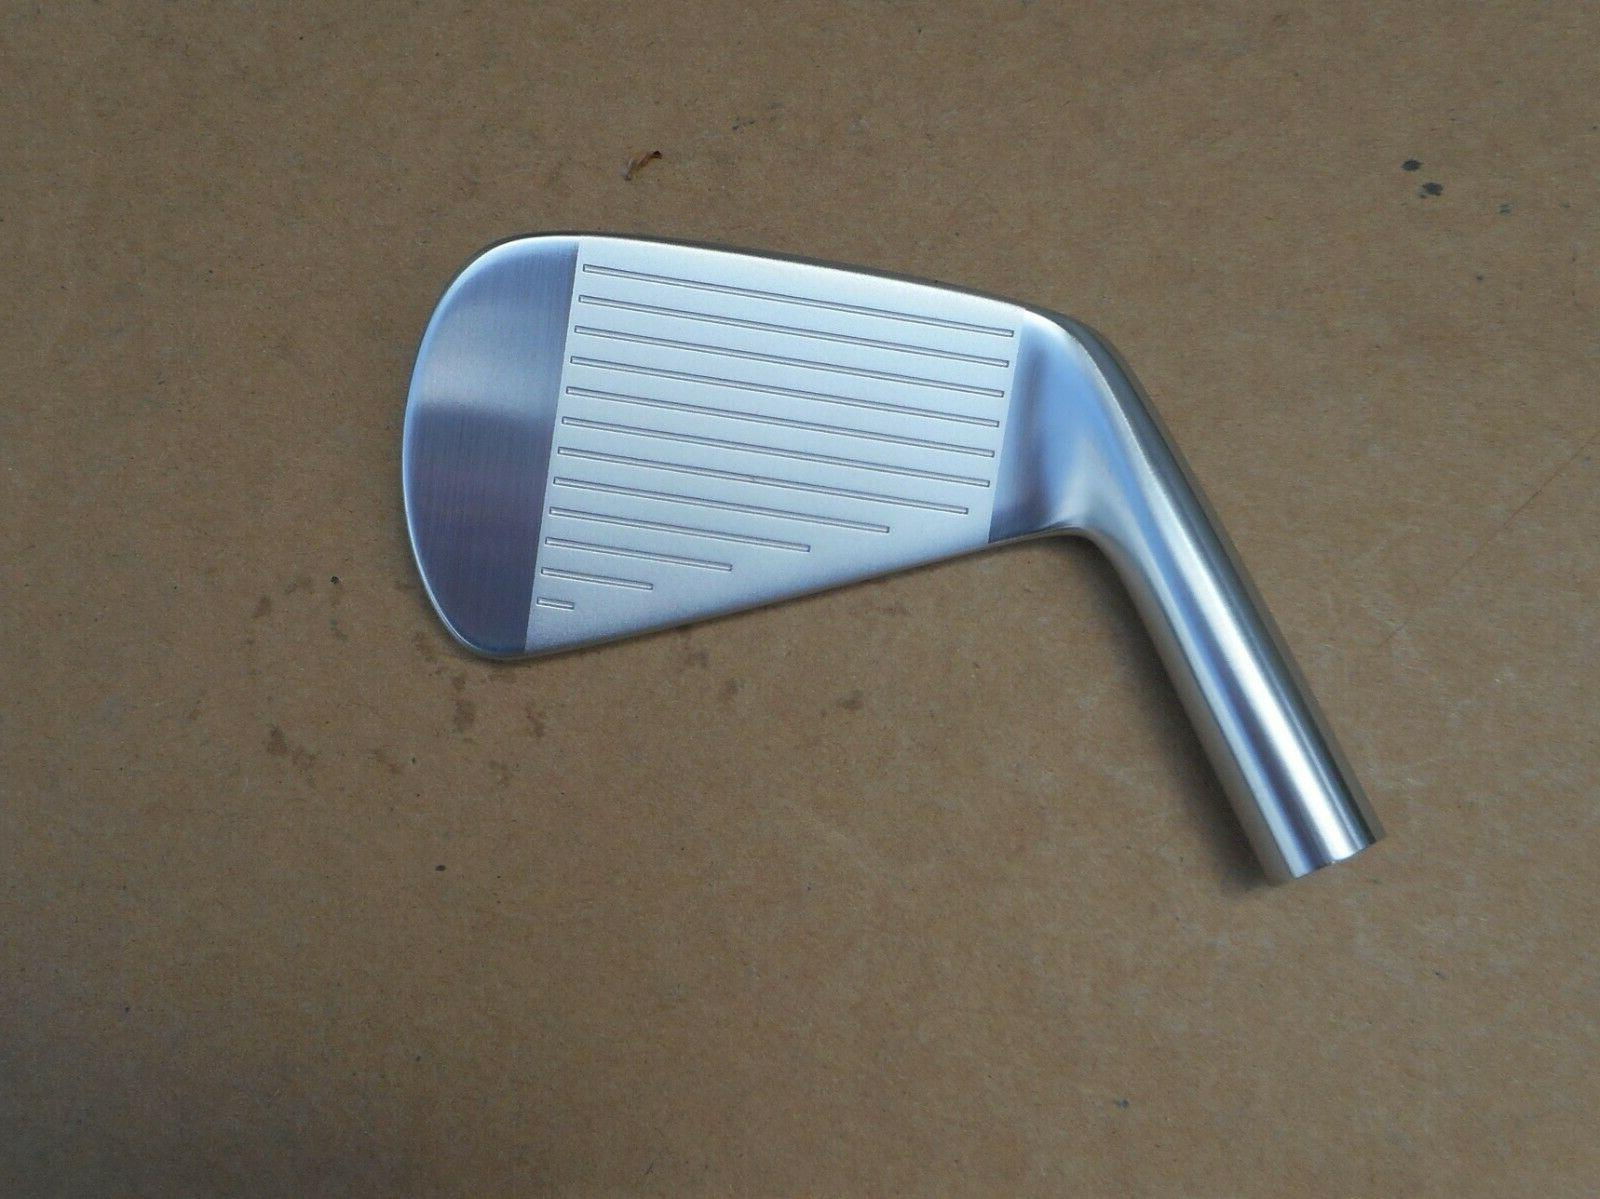 1 New Miura MB-001 3, or 5 iron Tournament Blade 355